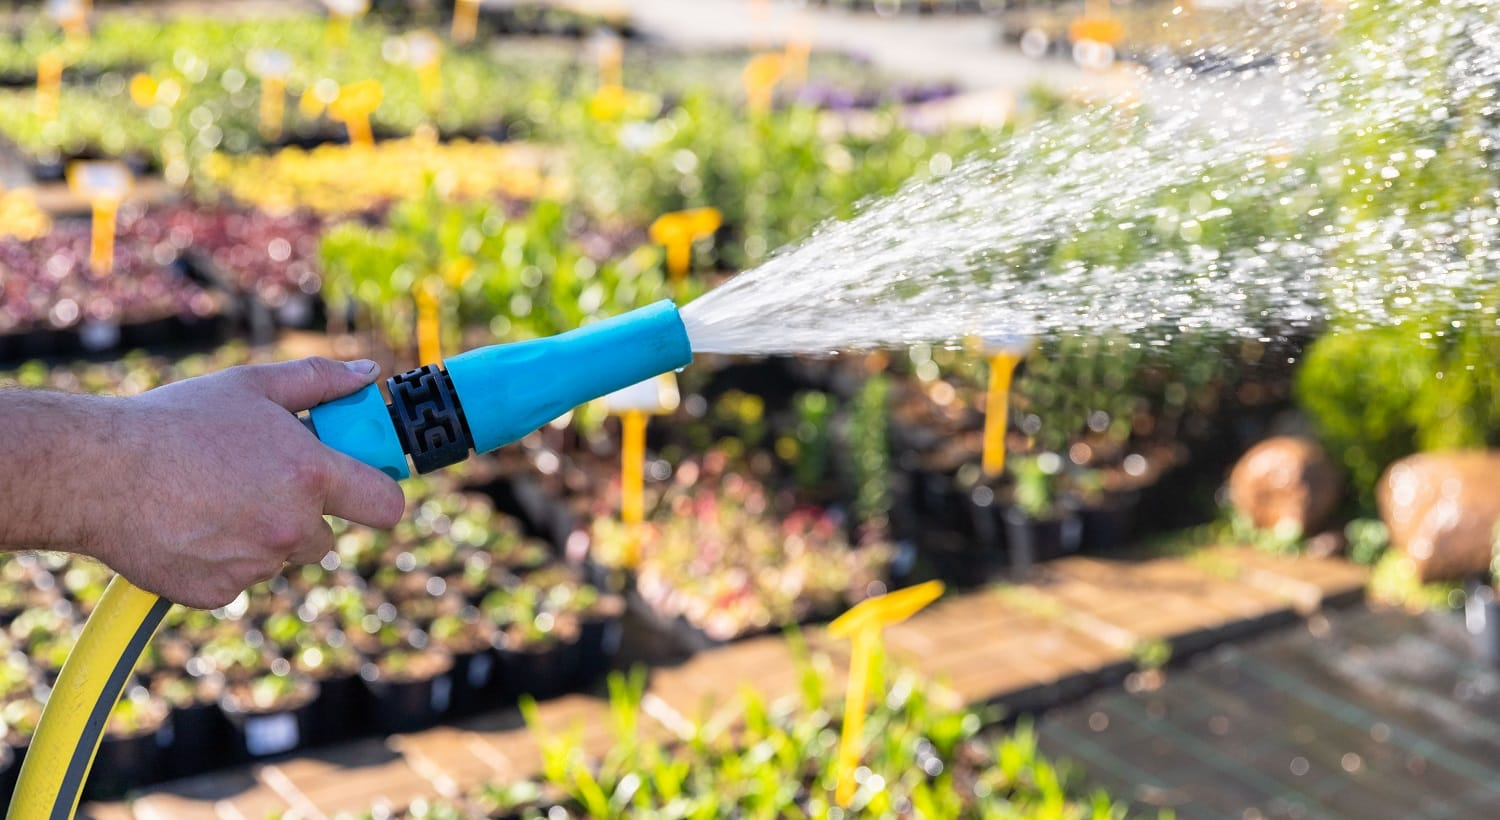 Gardener hand with garden hose watering plants, close up, sun light. Gardening concept